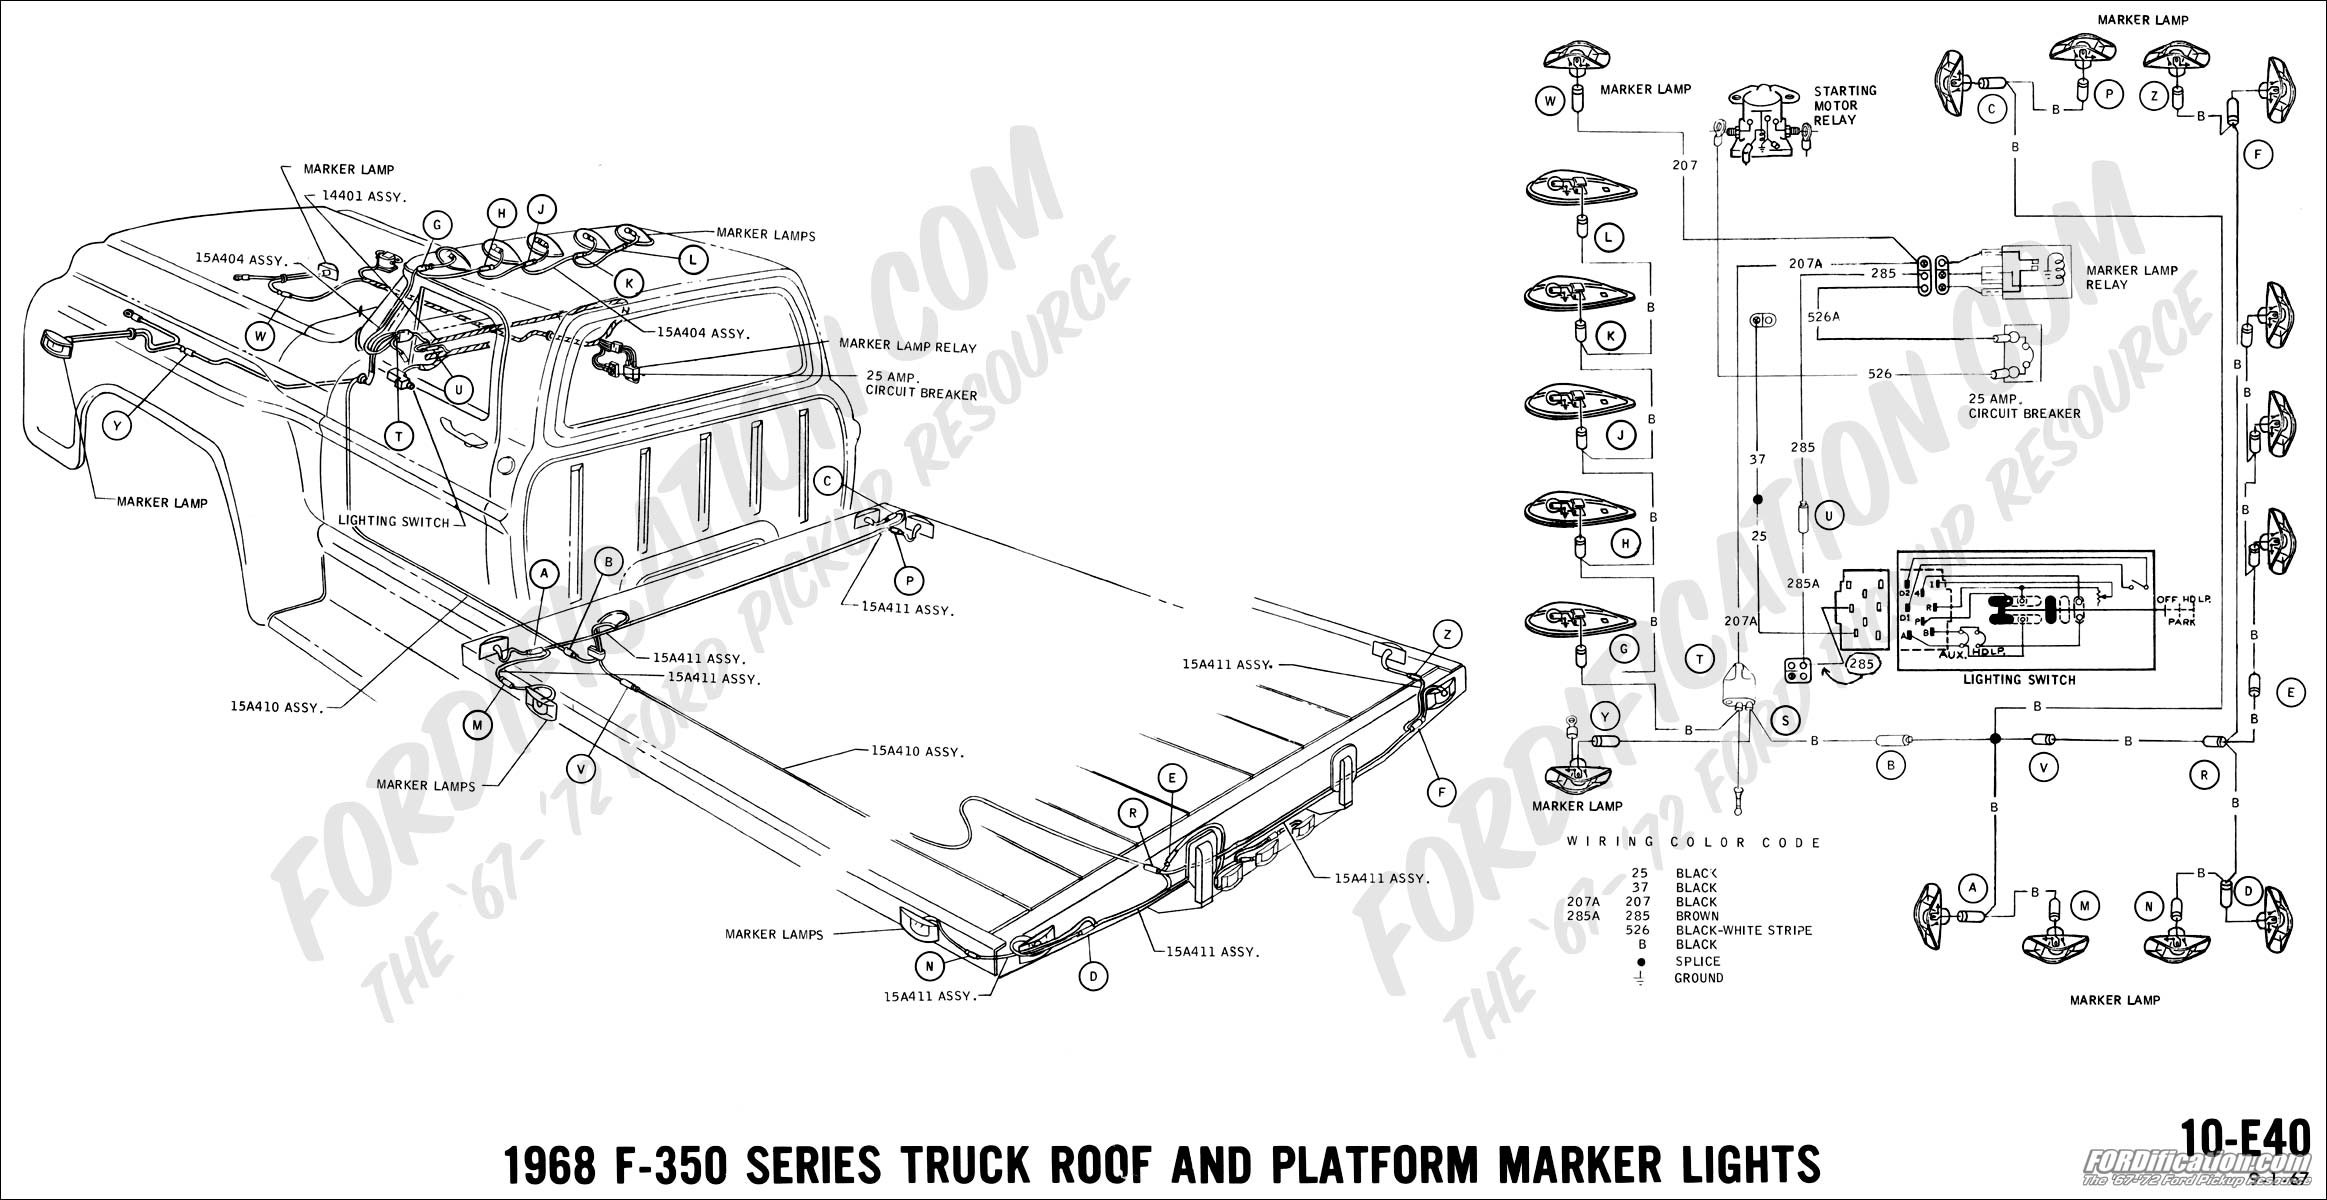 1968 Gmc Truck Wiring Diagrams • Wiring Diagram For Free